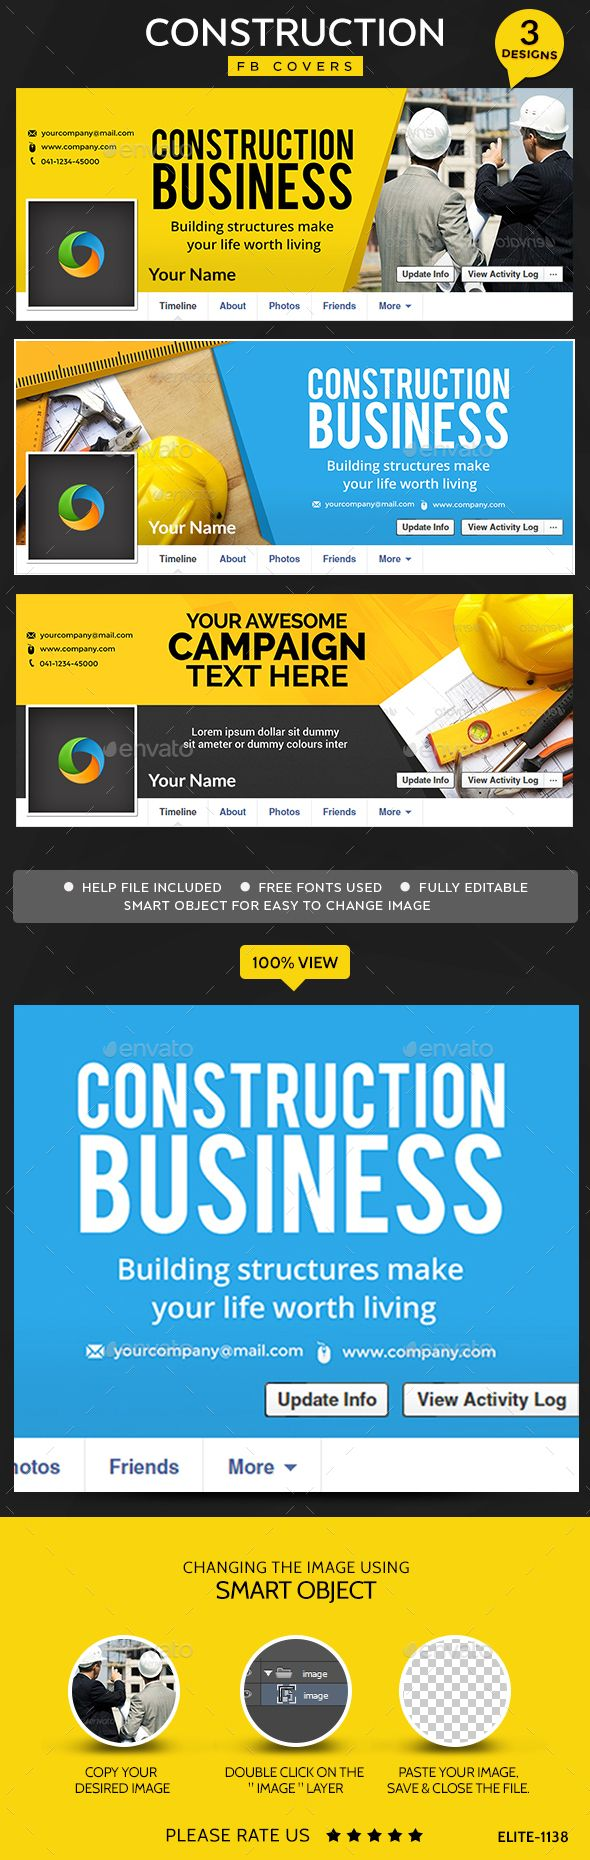 Construction Facebook Covers   Designs  Timeline Covers